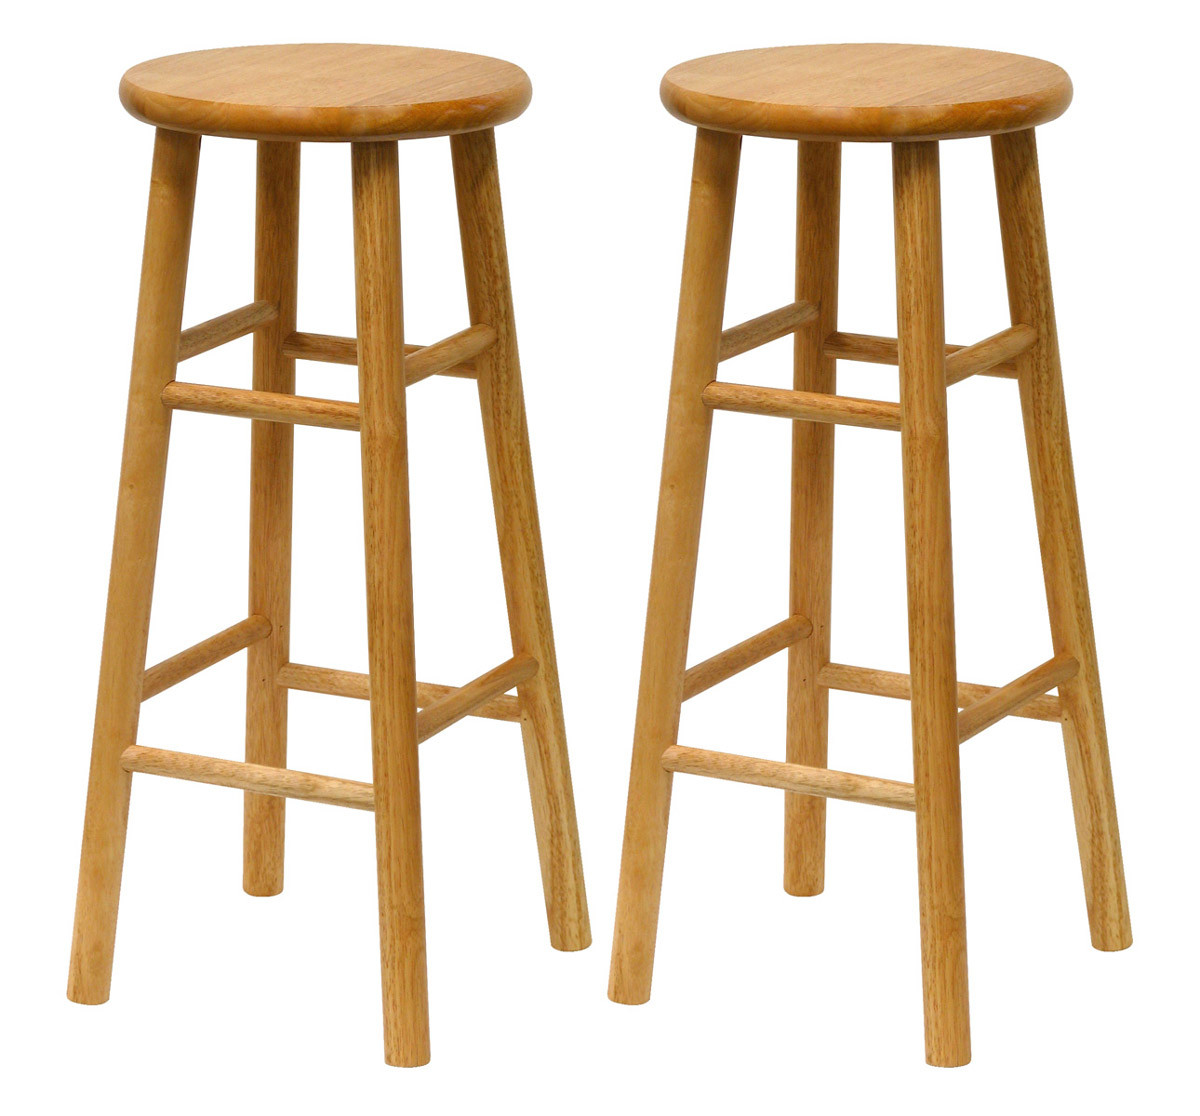 http://d3f8w3yx9w99q2.cloudfront.net/1352/Winsome-Assem-Bevel-Seat-Bar-Stool-Set-of-2-Bar-Stool/Winsome-Assem-Bevel-Seat-Bar-Stool-Set-of-2-Bar-Stool_2_0.jpg